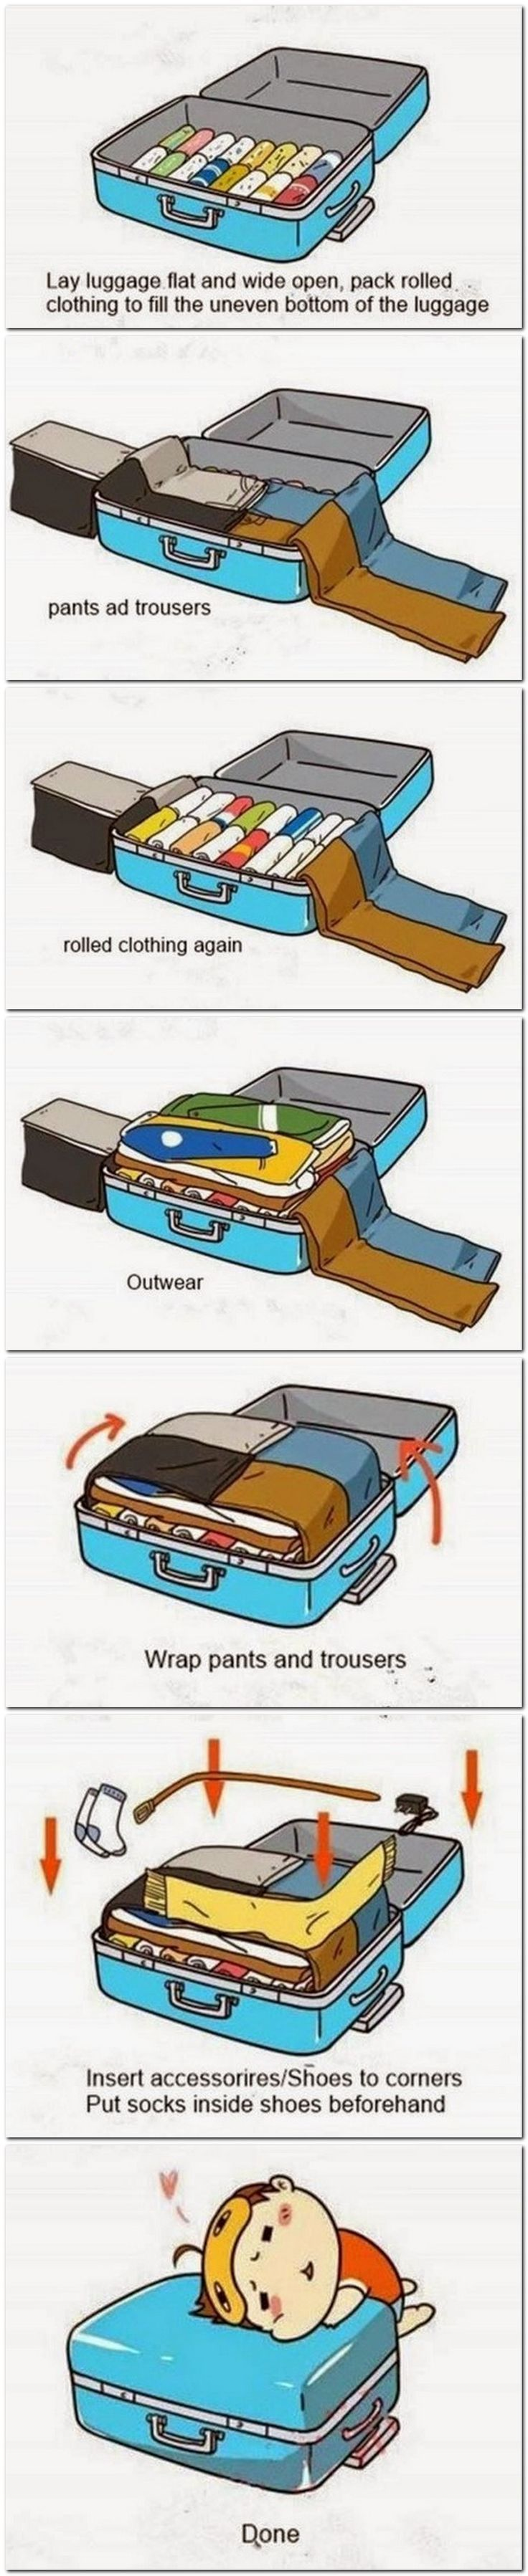 How to pack a suitcase